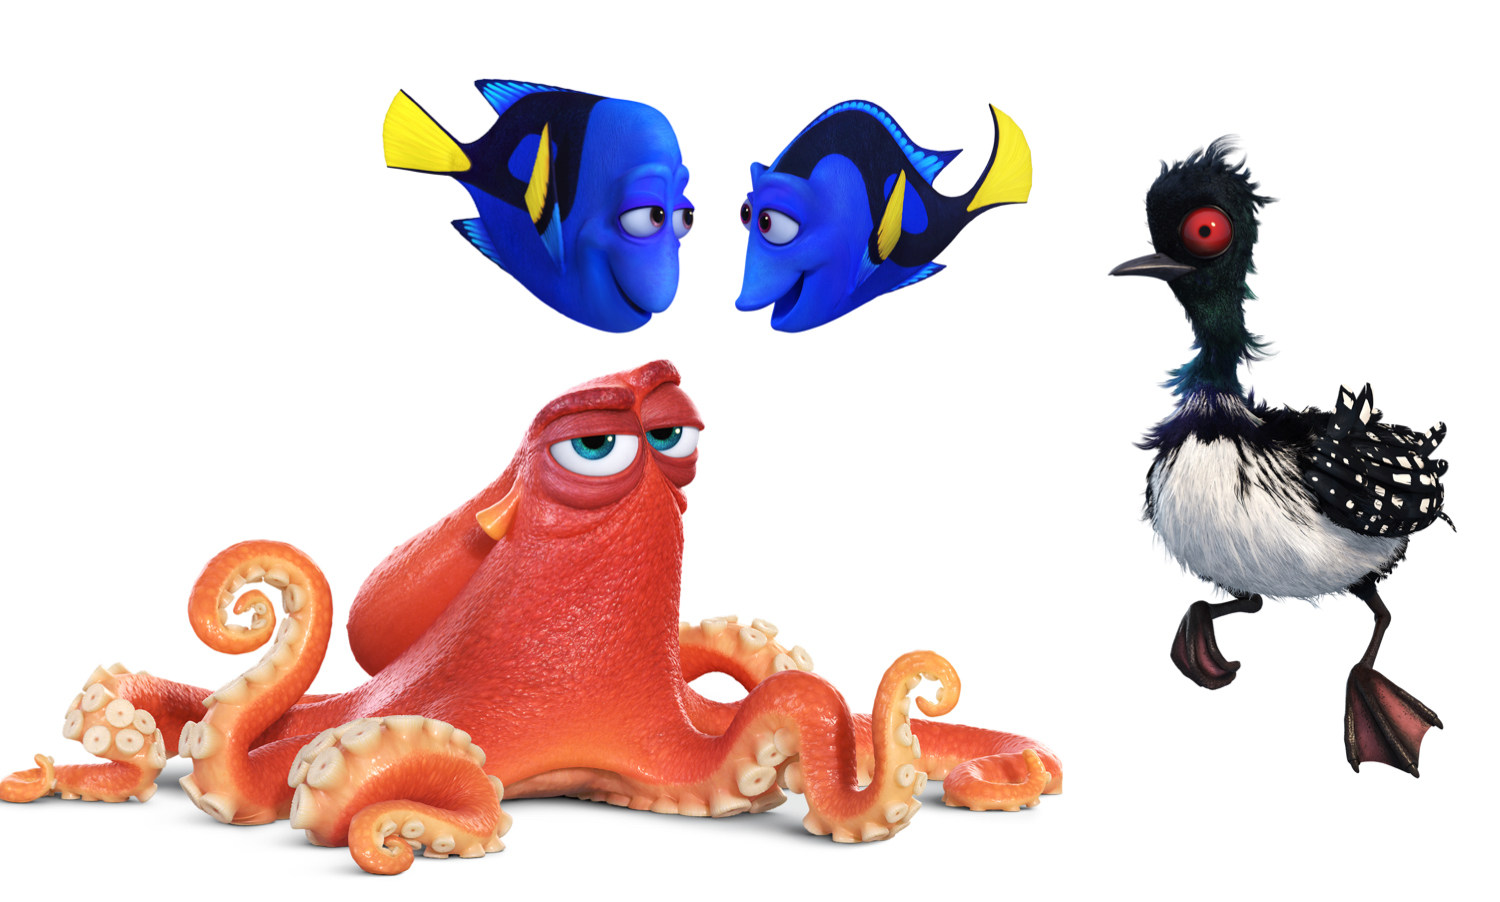 Scientists are worried everyone will want their own Dory